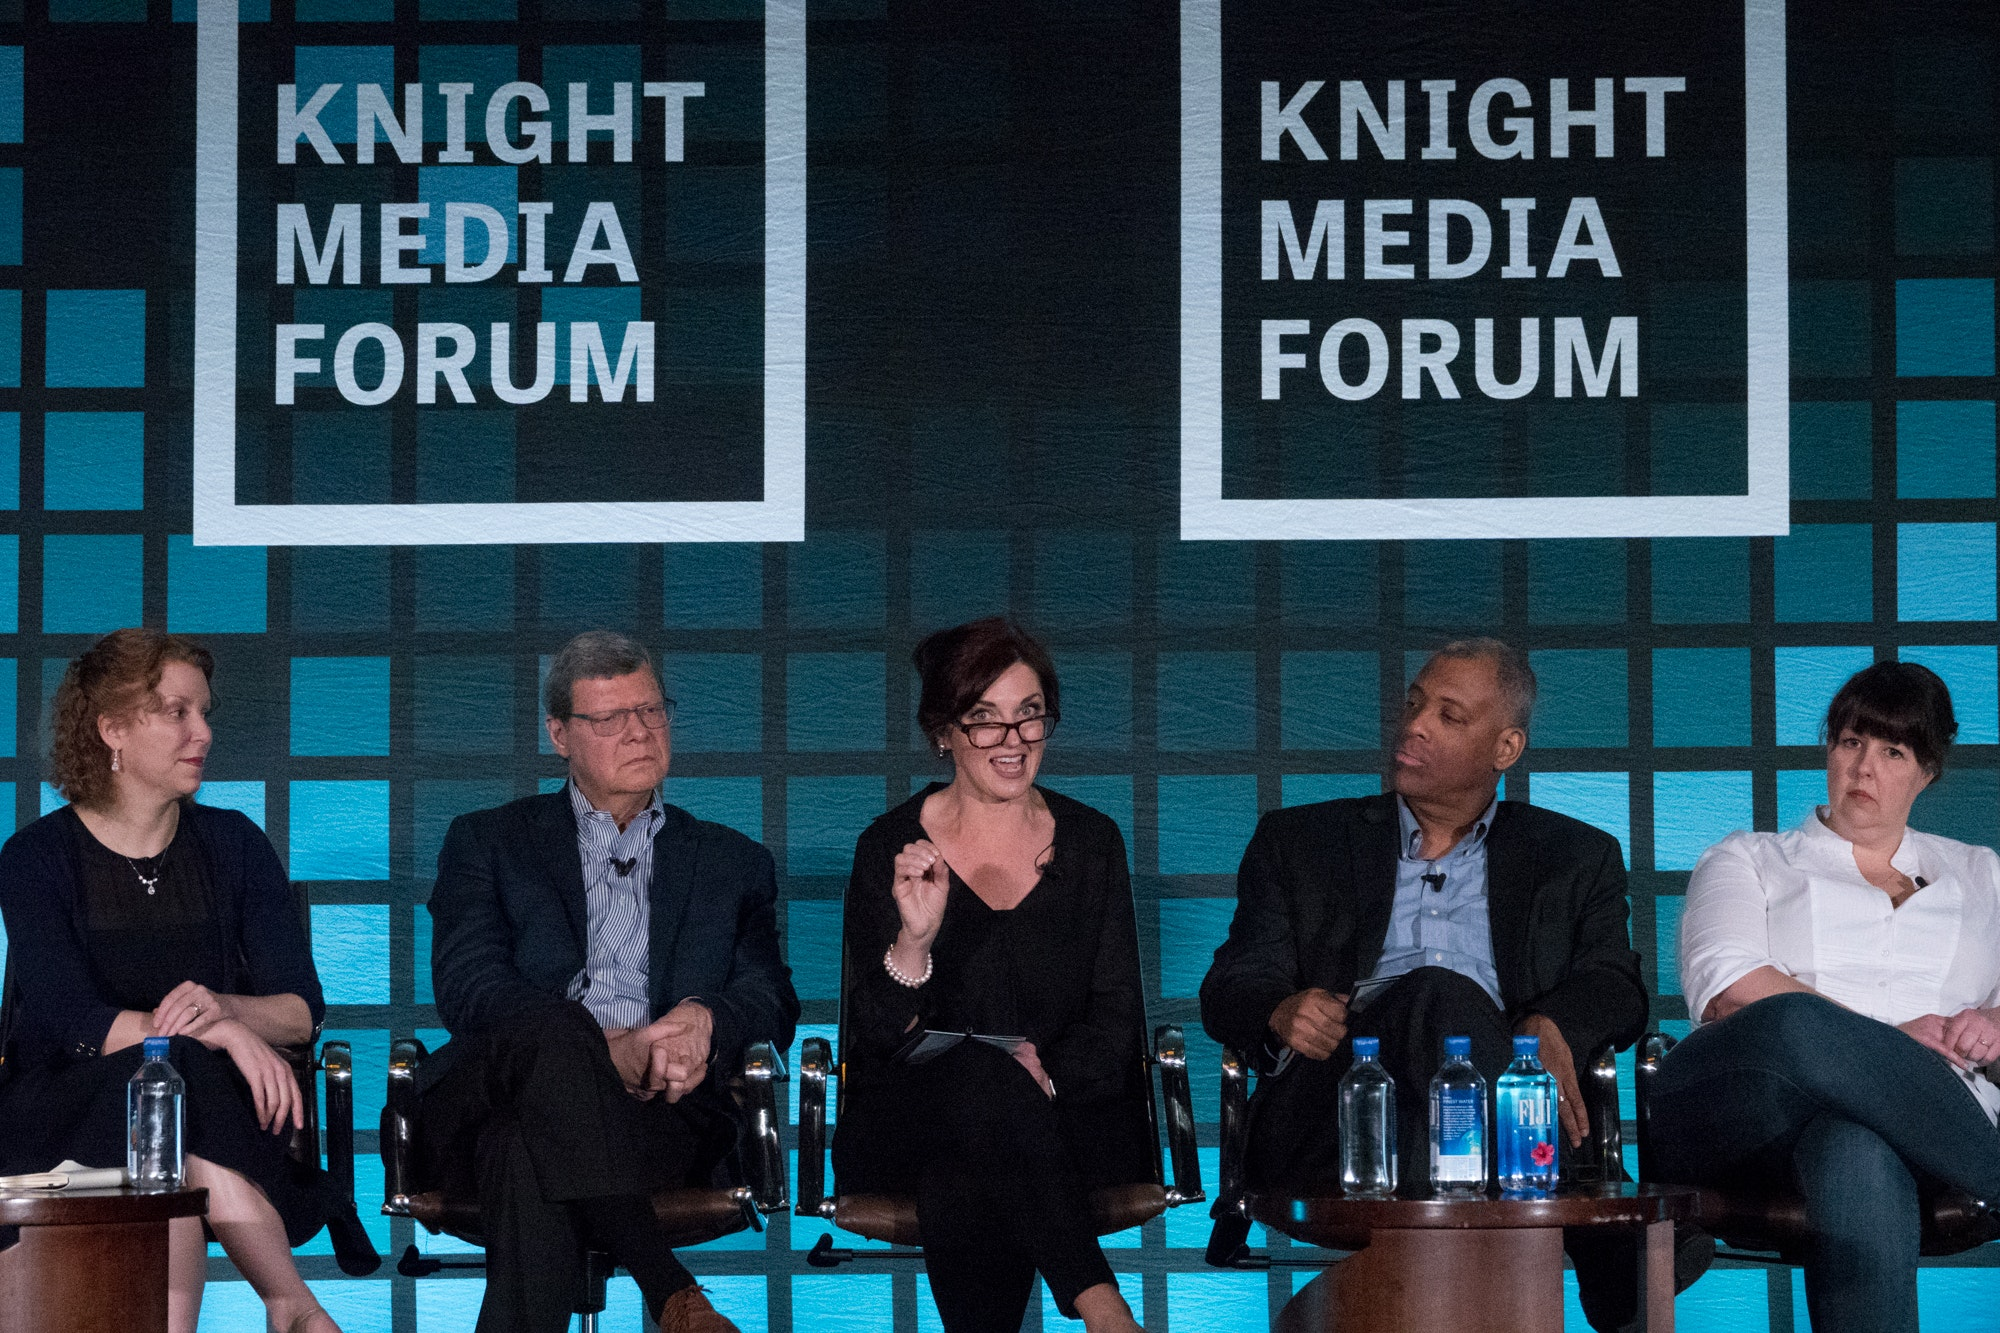 <p>Nuala O'Connor, president and CEO of the Center for Democracy and Technology makes a point during a panel discussion with the Knight Commission on Trust, Media and Democracy at the Knight Media Forum 2018. Photo: Angel Valentin</p>